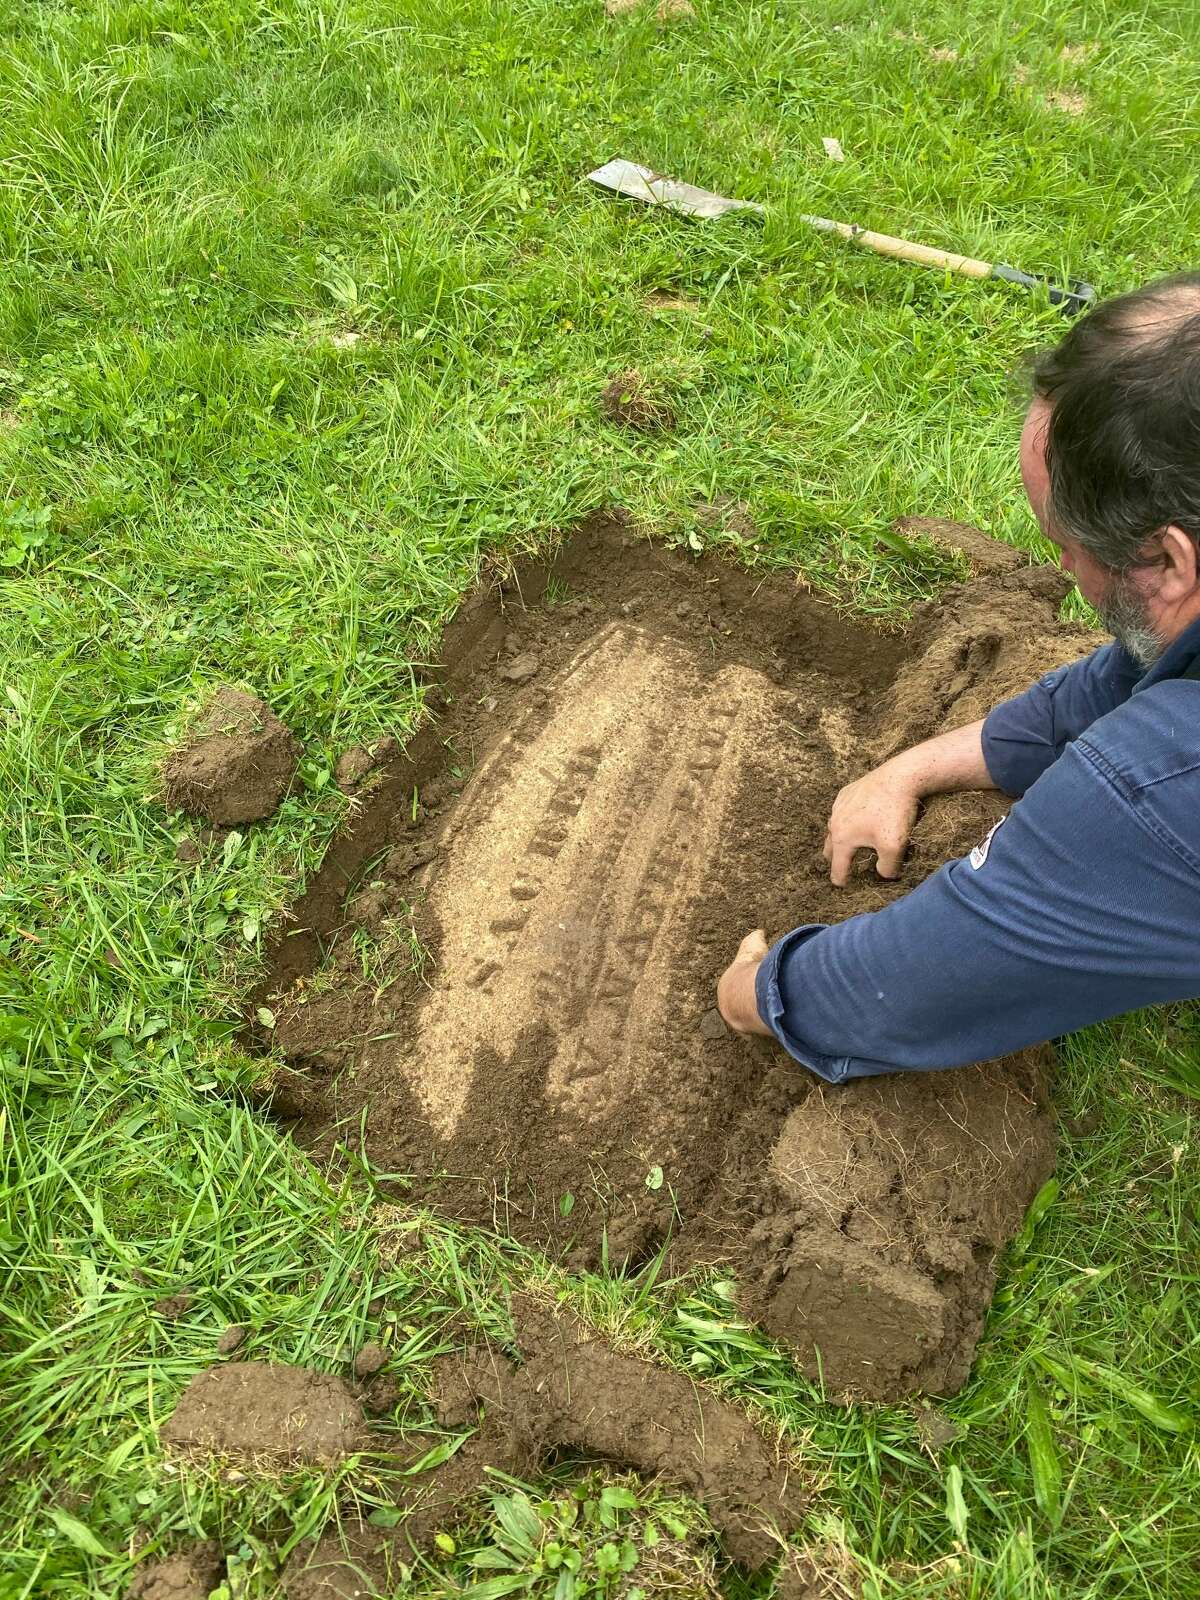 Chris White, owner of Albany Grave Digger, uncovers part of the gravestone for the Rev. Nathaniel Paul, who arrived in Albany in 1820 as the founding pastor of what would become First African Baptist Church. White and historian Paula Lemire unearthed the marker earlier this week in Albany Rural Cemetery in Menands. It is presumed to have been buried for a century or more after  being toppled or falling over. (Provided photo.)